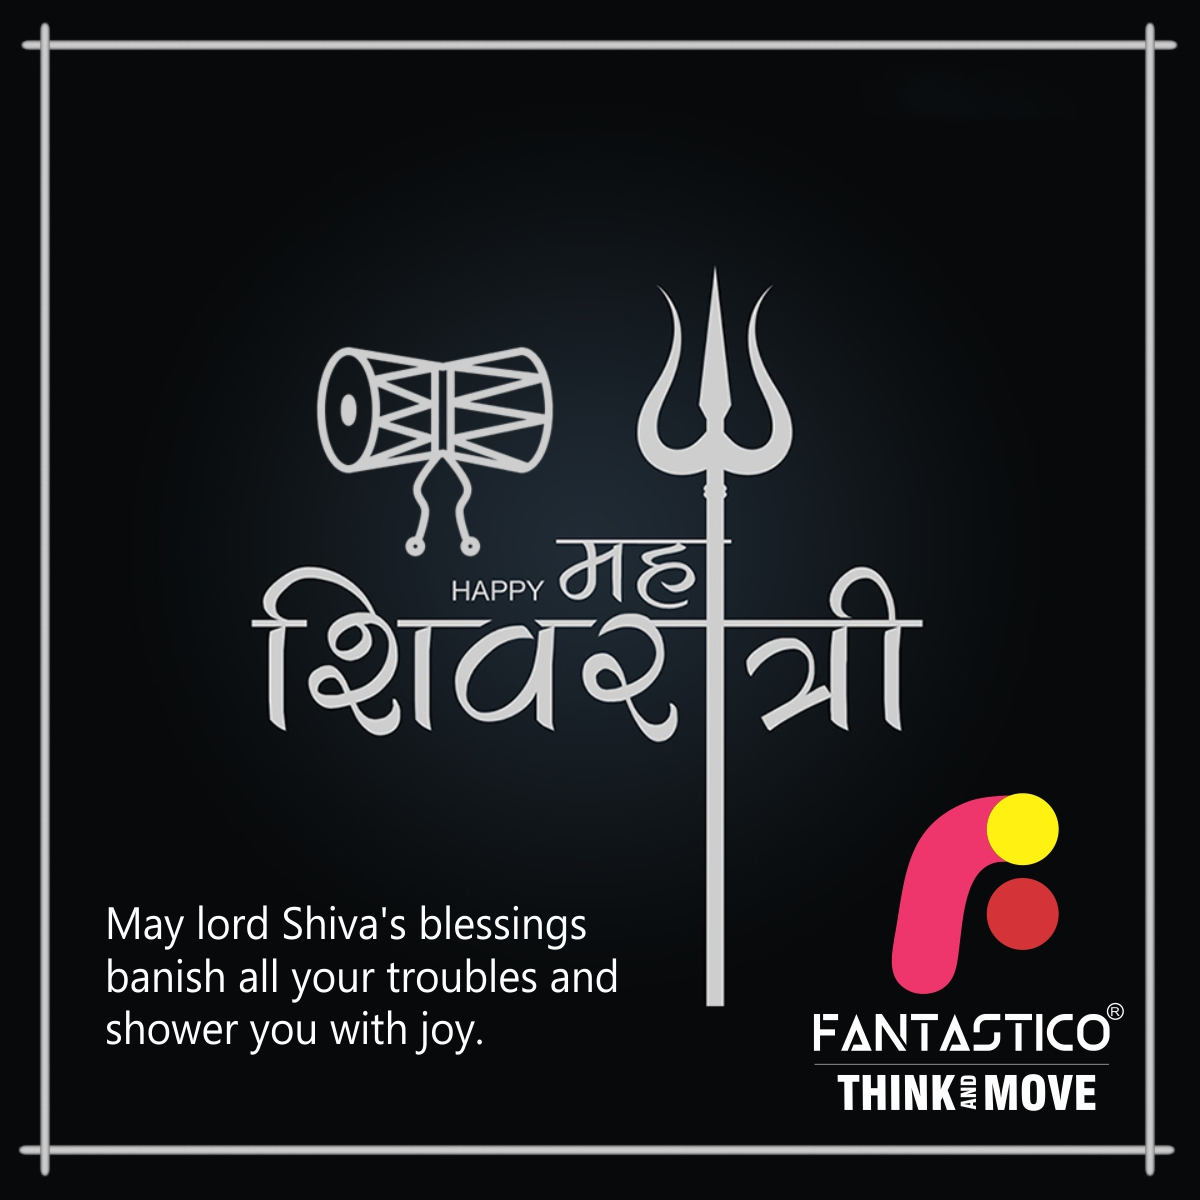 MAY LORD SHIVA BLESS YOU WITH HAPPINESS, GOOD FORTUNE & PROSPERITY. #Mahashivratri FANTASTICO BRANDGreat Brand. Smart Prices.#Fantastico #Shoes #designs #Brand #Janmashtami #FantasticoShoes #Handcrafted #shoes #MenShoes #MenFootwear #MenFormalShoes #MenFormal #MenDressShoes